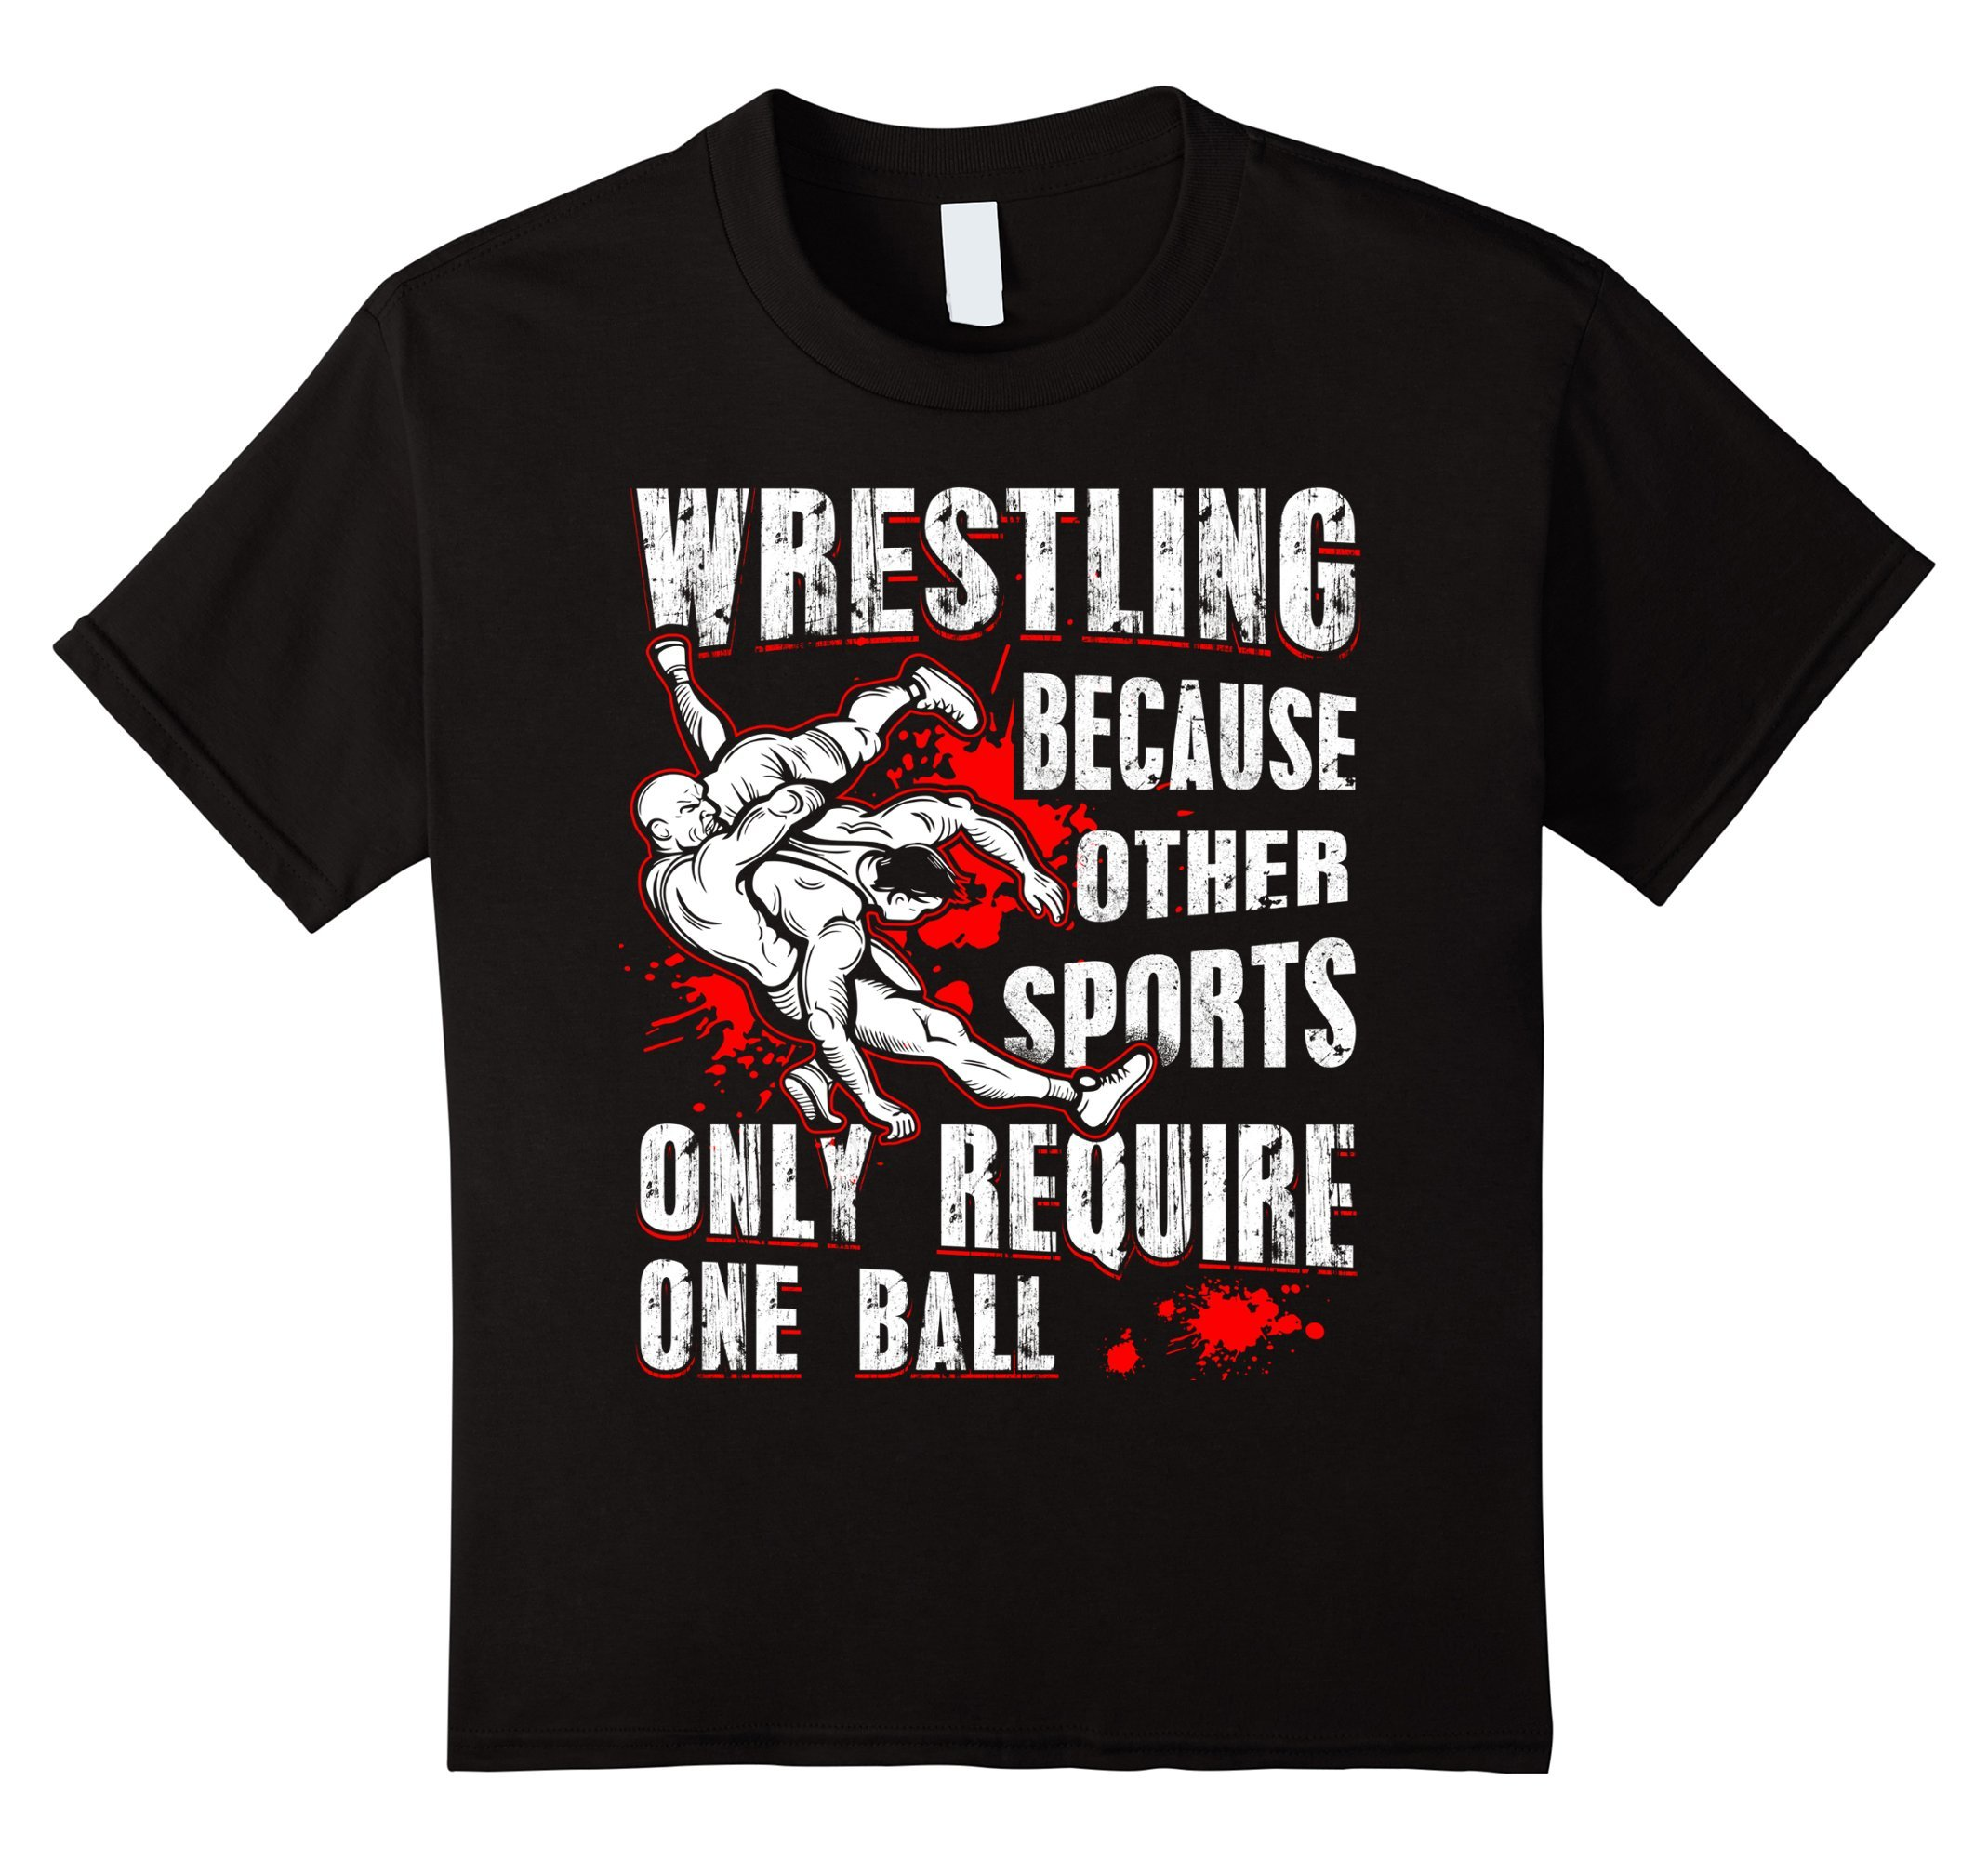 Kids Wrestling T-shirts Because Other Sports Only 10 Black by Funny Wrestling T-Shirts